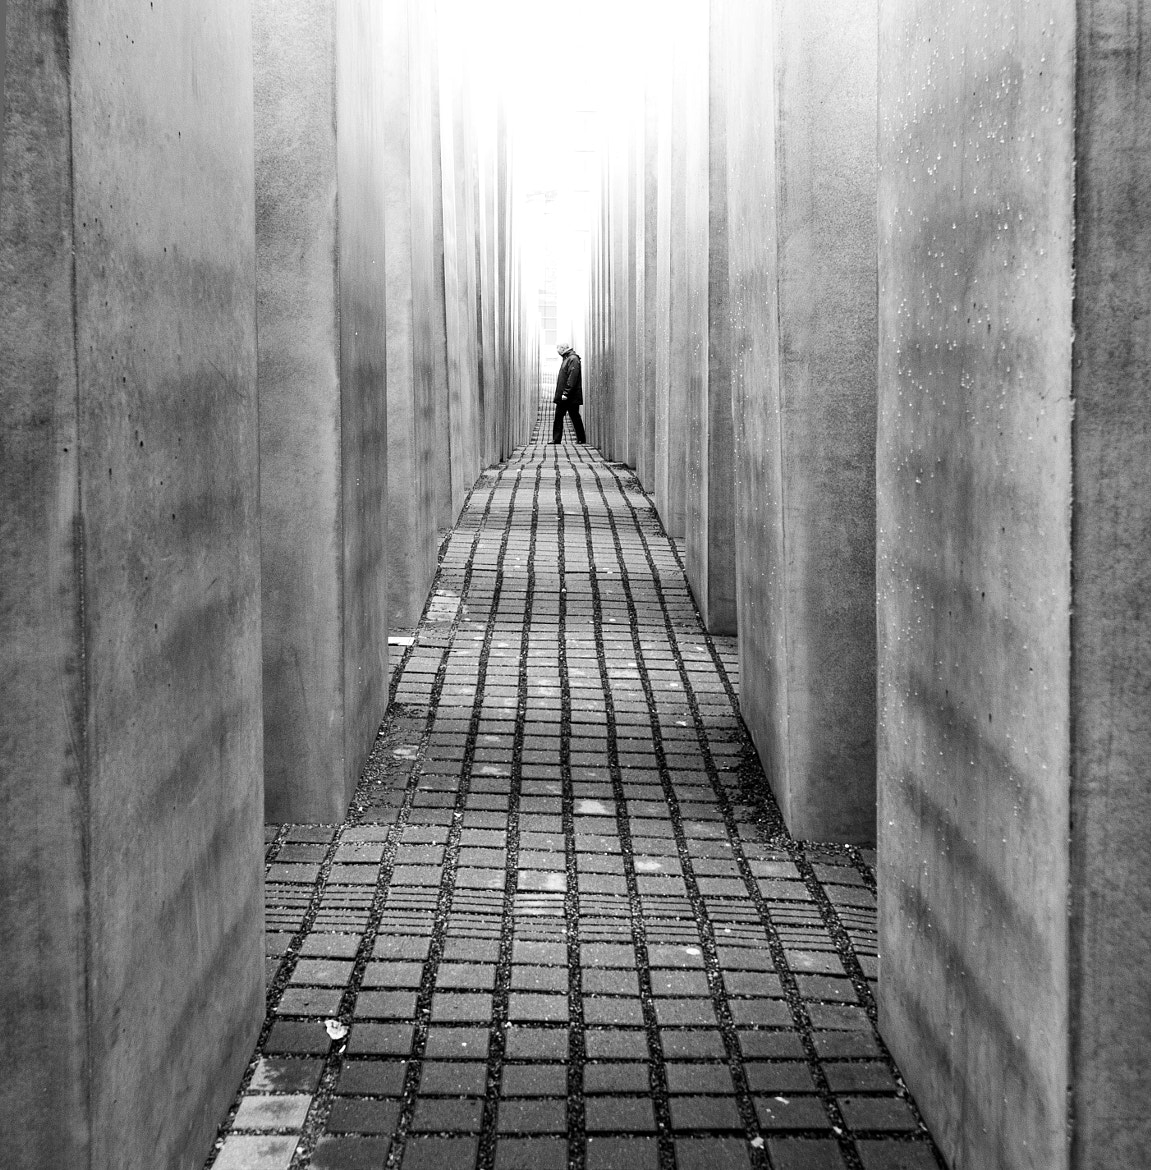 Photograph Memorial Man - BerlinClassic 02 by Marcel Bednarz on 500px